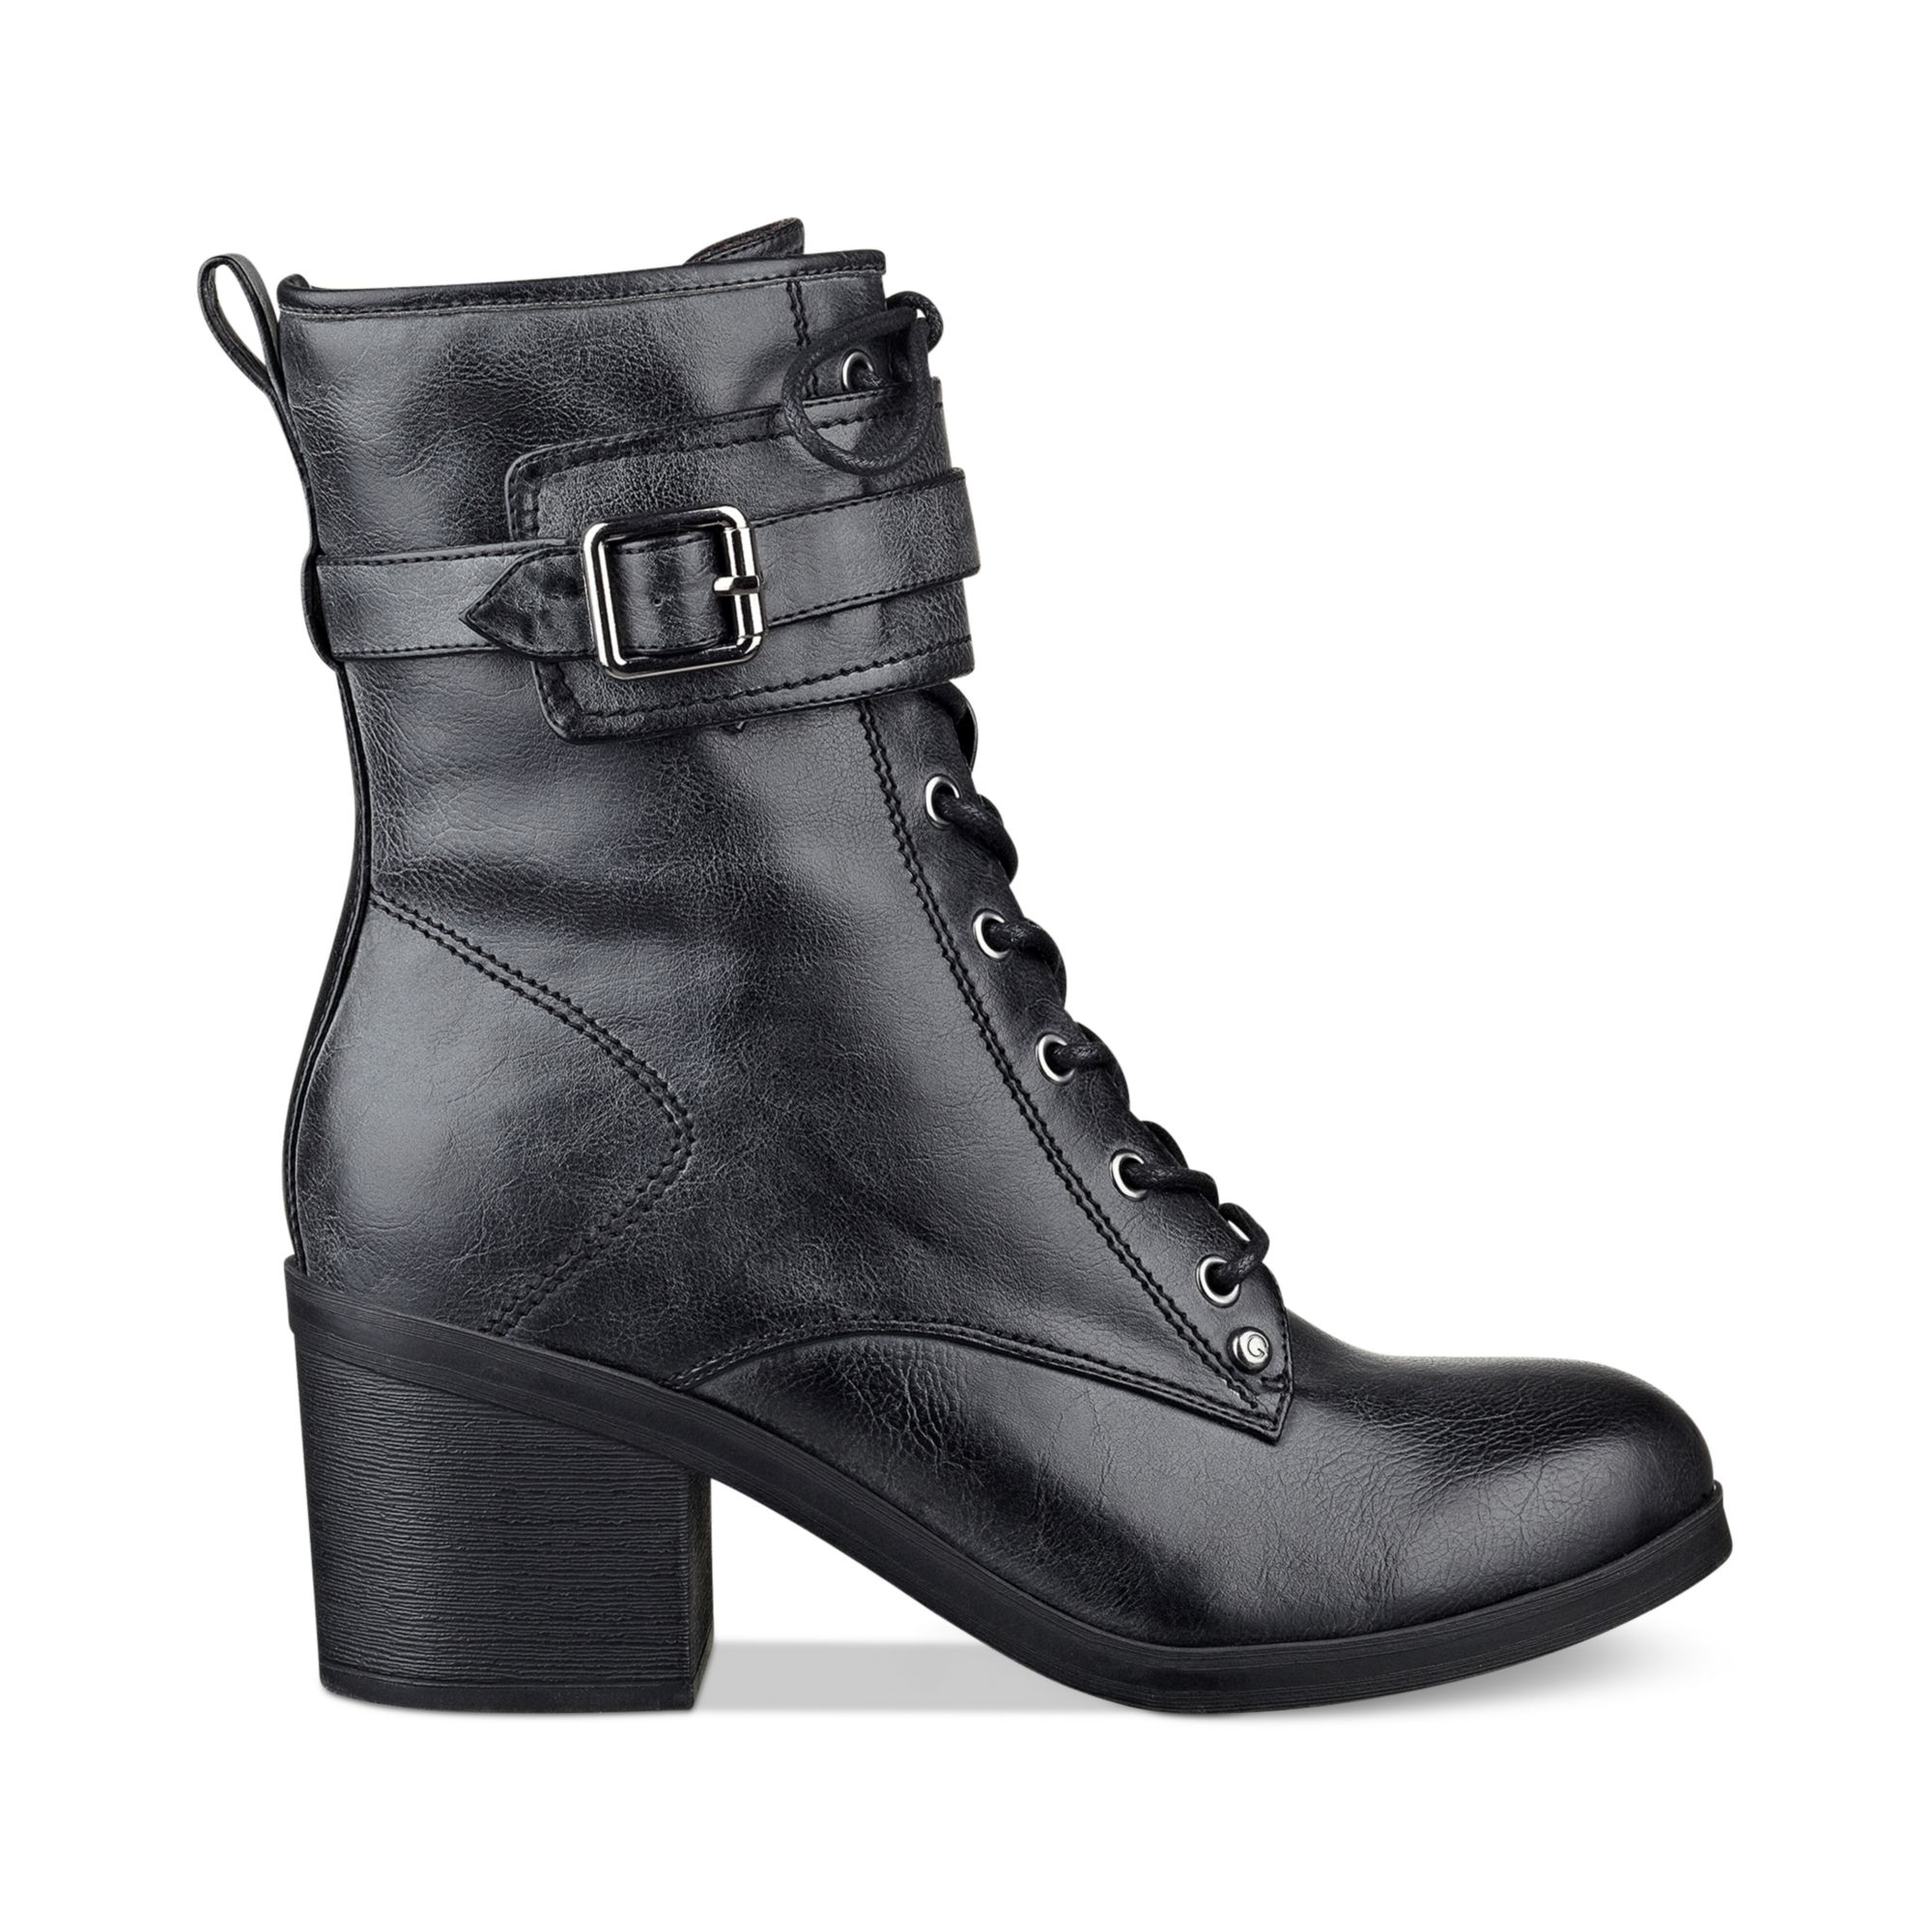 Shopping for Short Booties at Frye is simple and convenient with FREE shipping and returns. FRYE | Veronica Combat - Black Out of the trenches and onto the streets, this combat boot has a way of making her presence known.